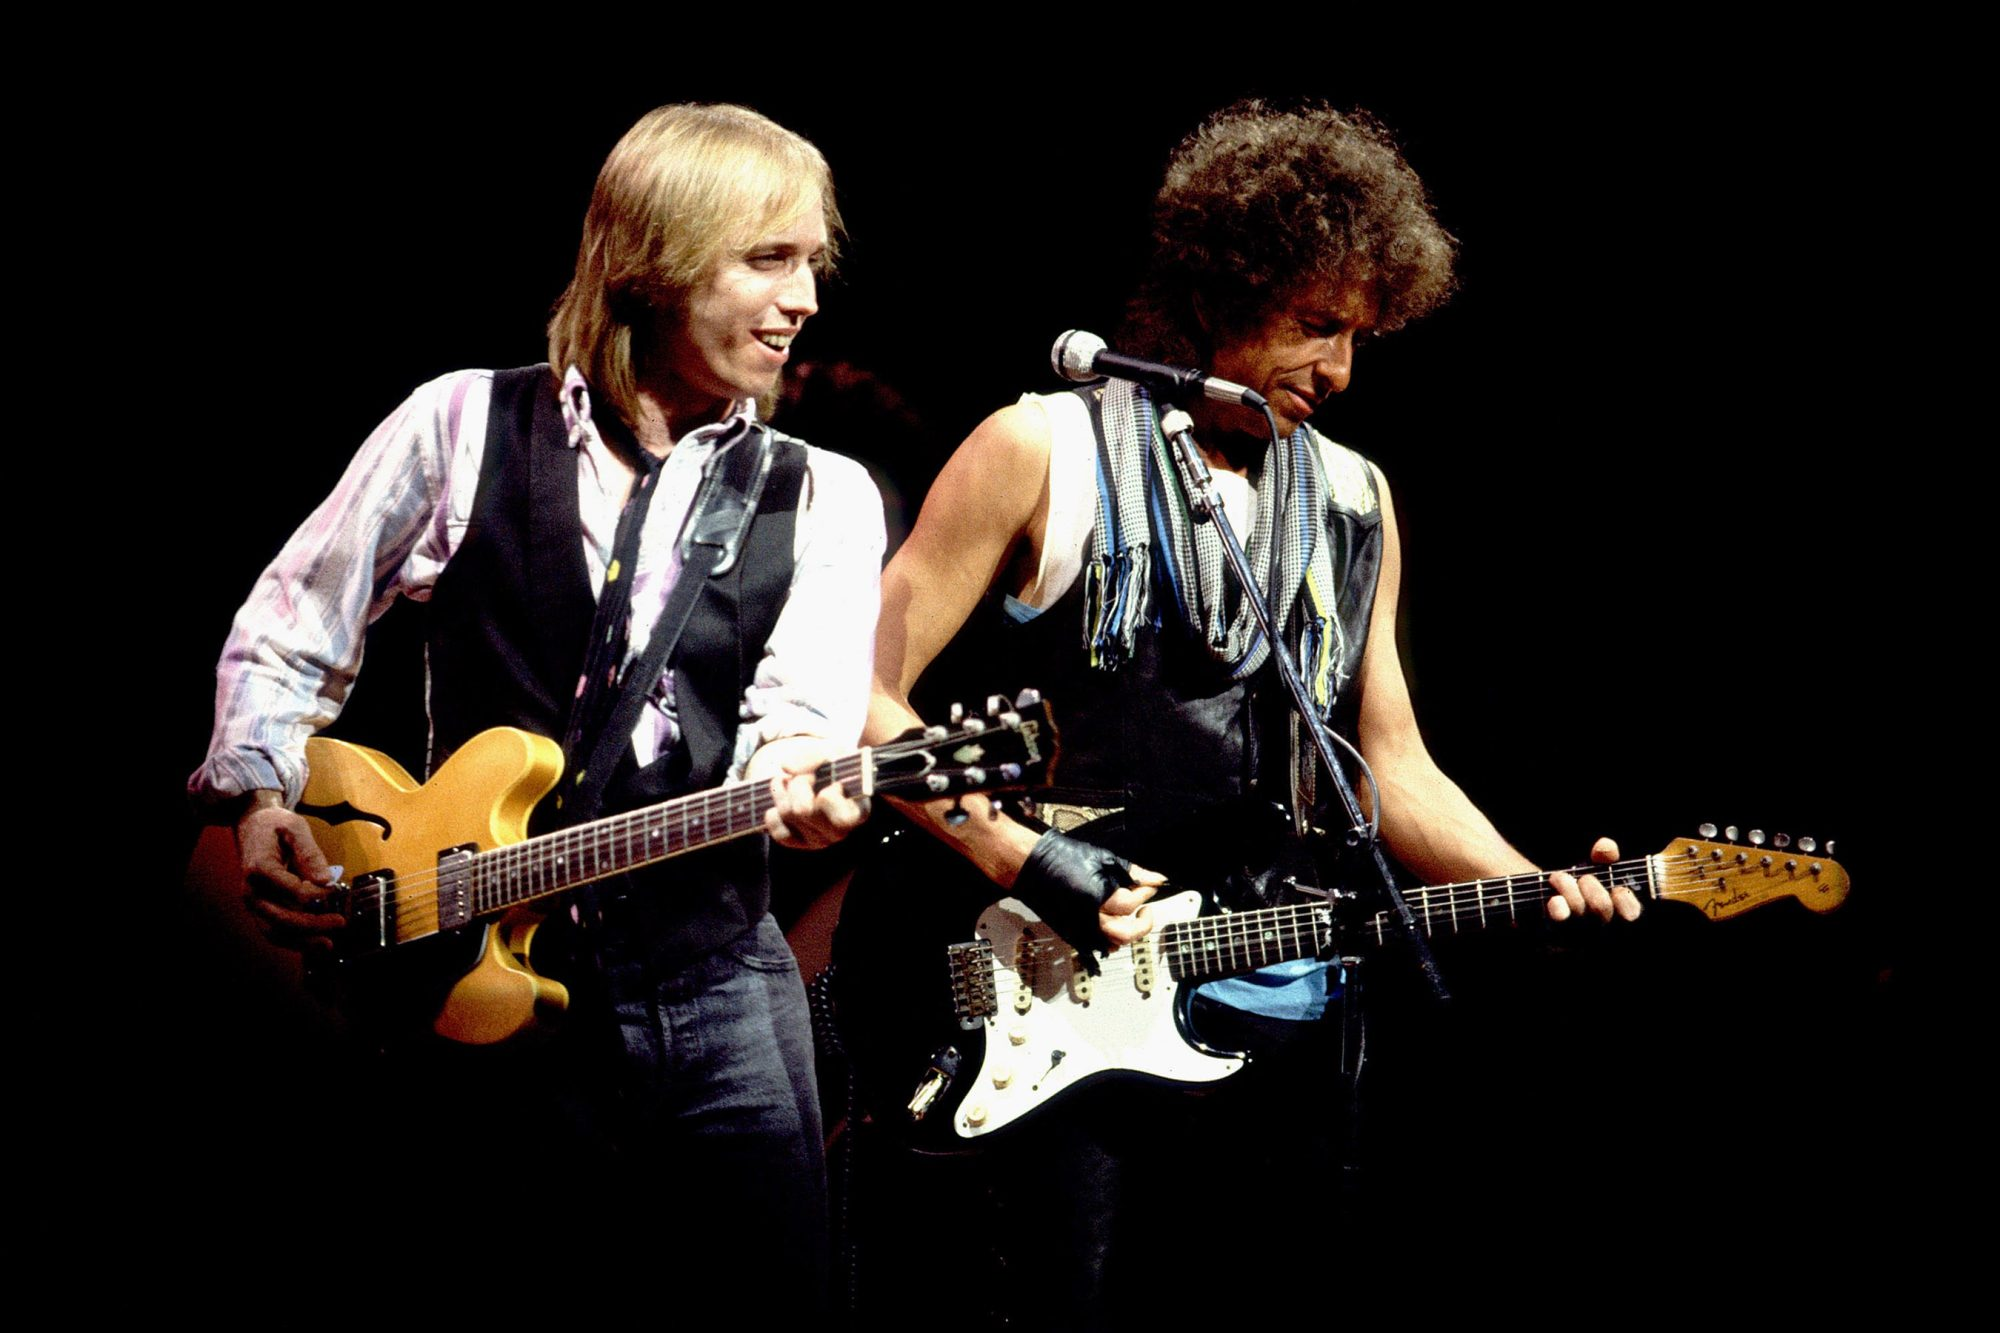 Bob Dylan and Tom Petty in Concert - July 22, 1986